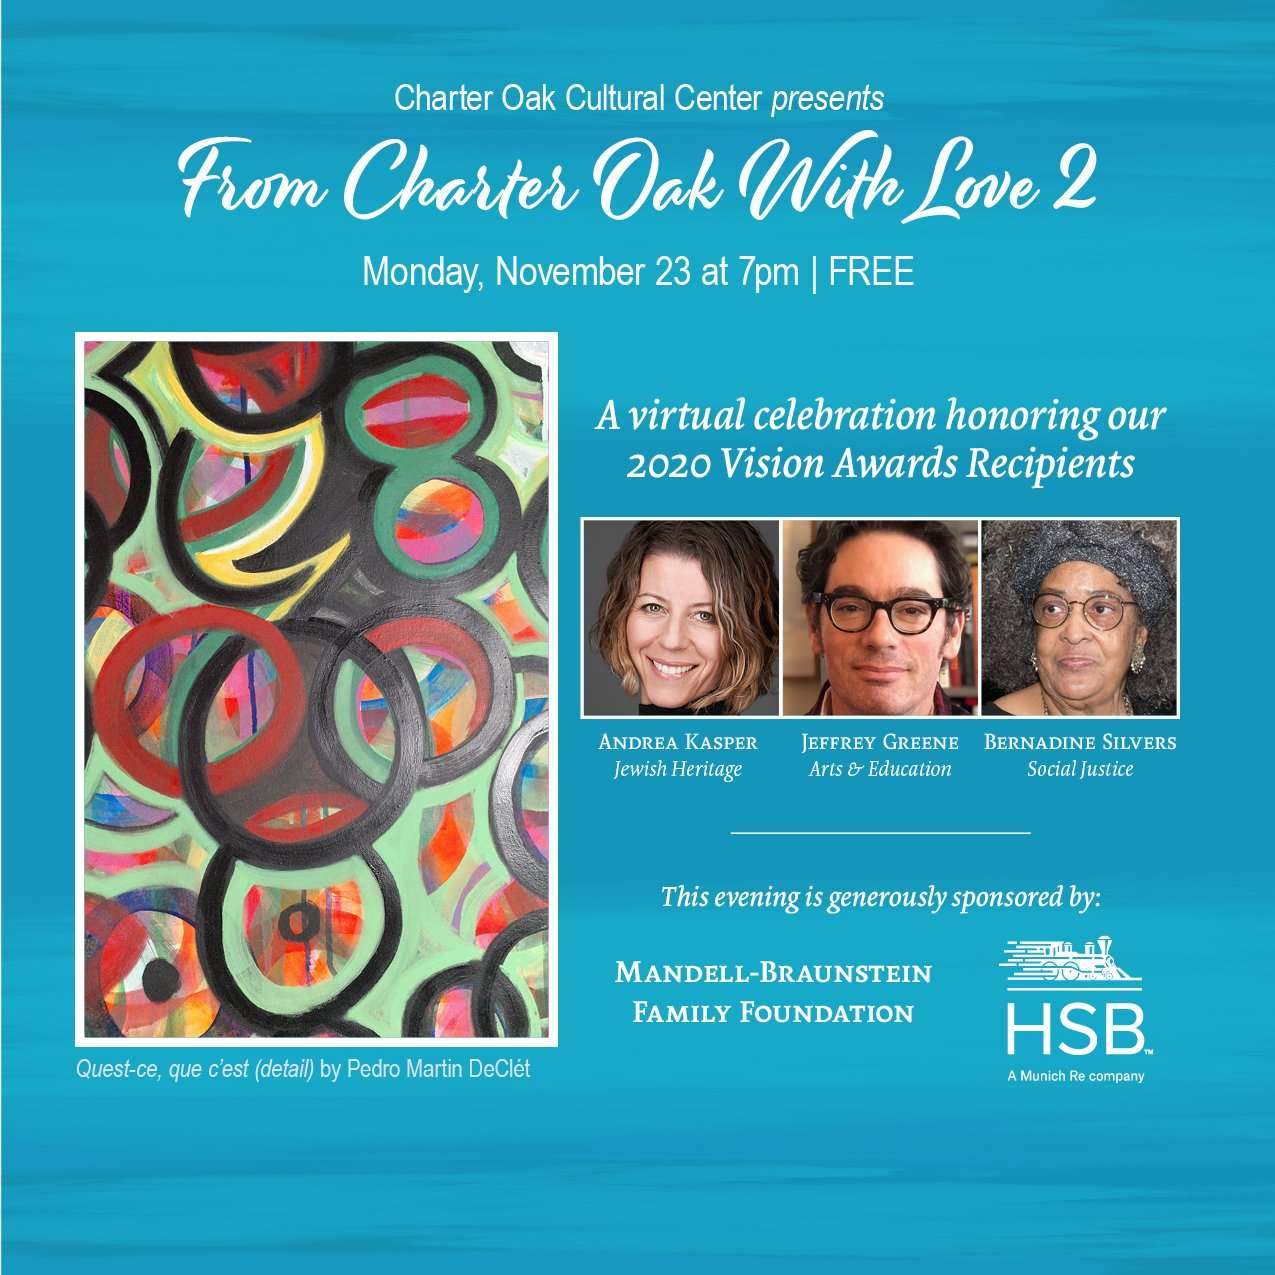 From Charter Oak With Love 2, Honoring 2020 Vision Awards Winners, Nov 23 7pm